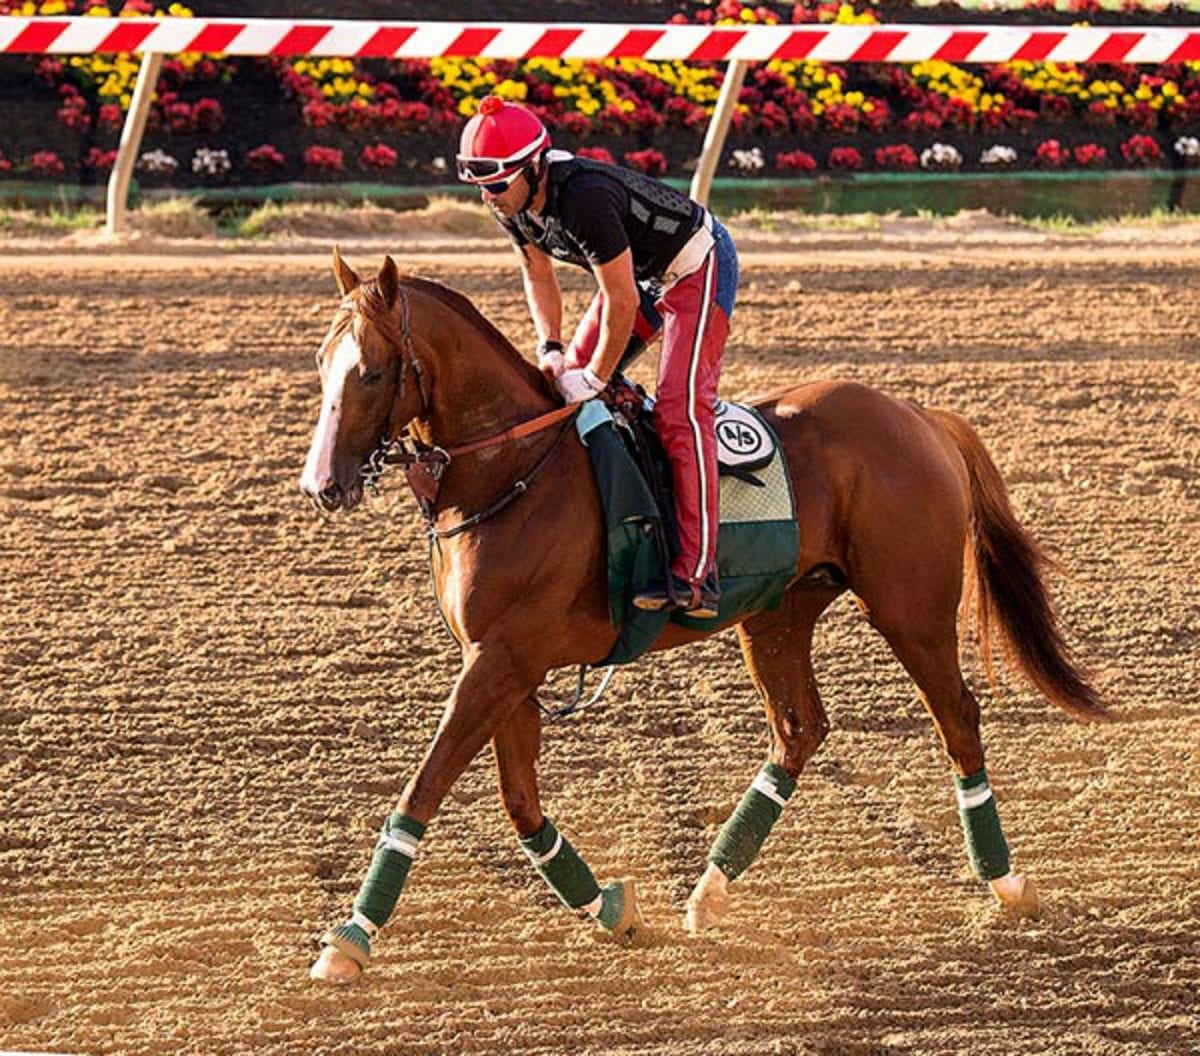 All systems go for California Chrome